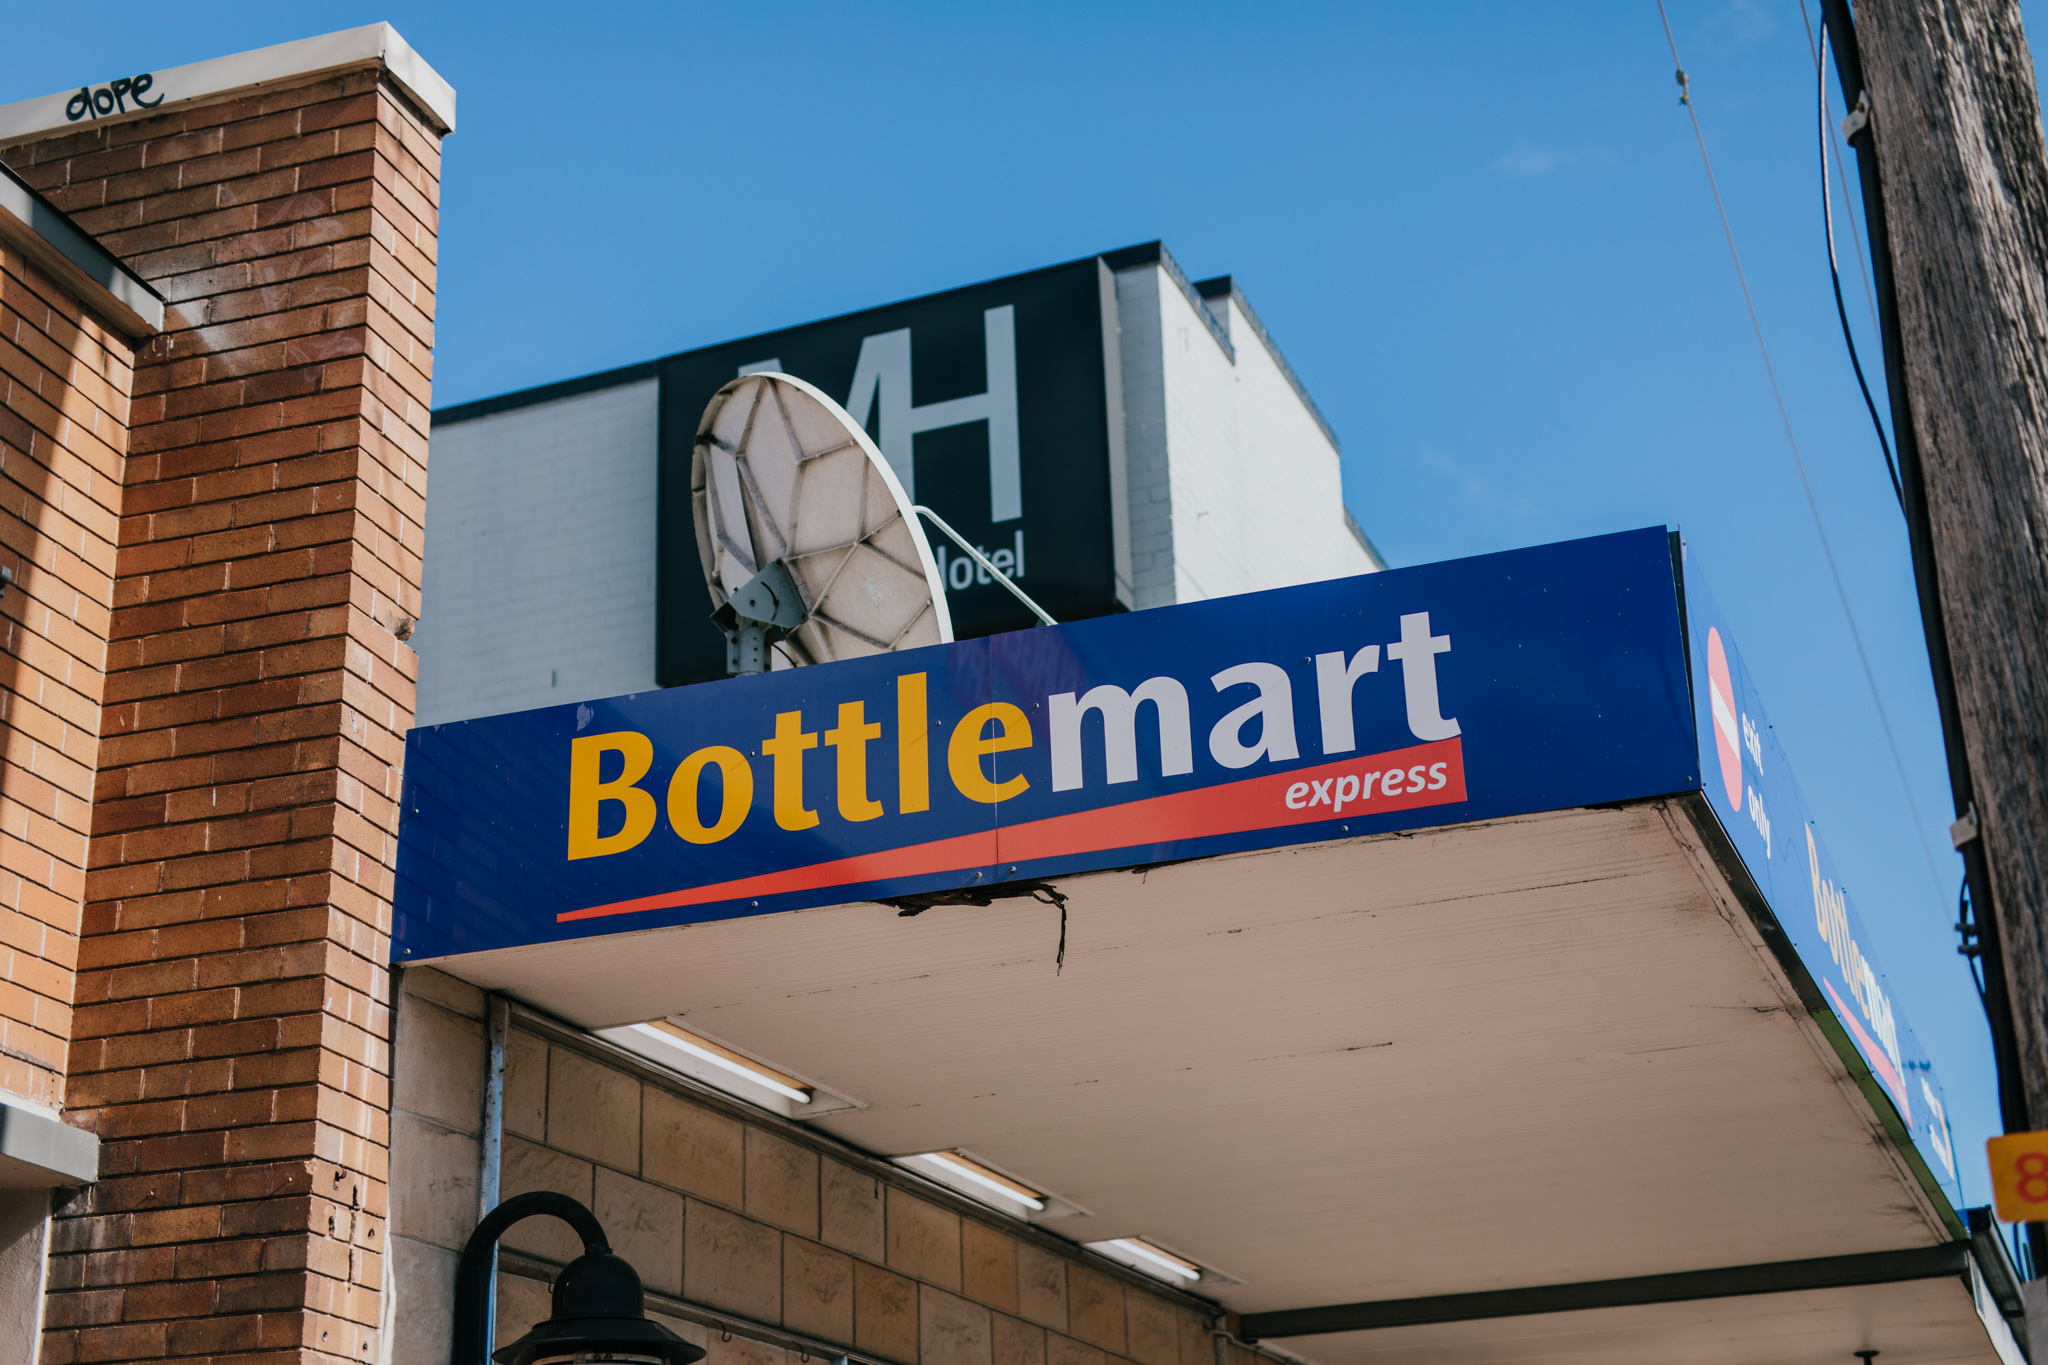 bottle shop - The Mayfield Hotel Bottlemart Bottleshop is your new local! Drive thru, open late and plenty of weekly specials and promotions.